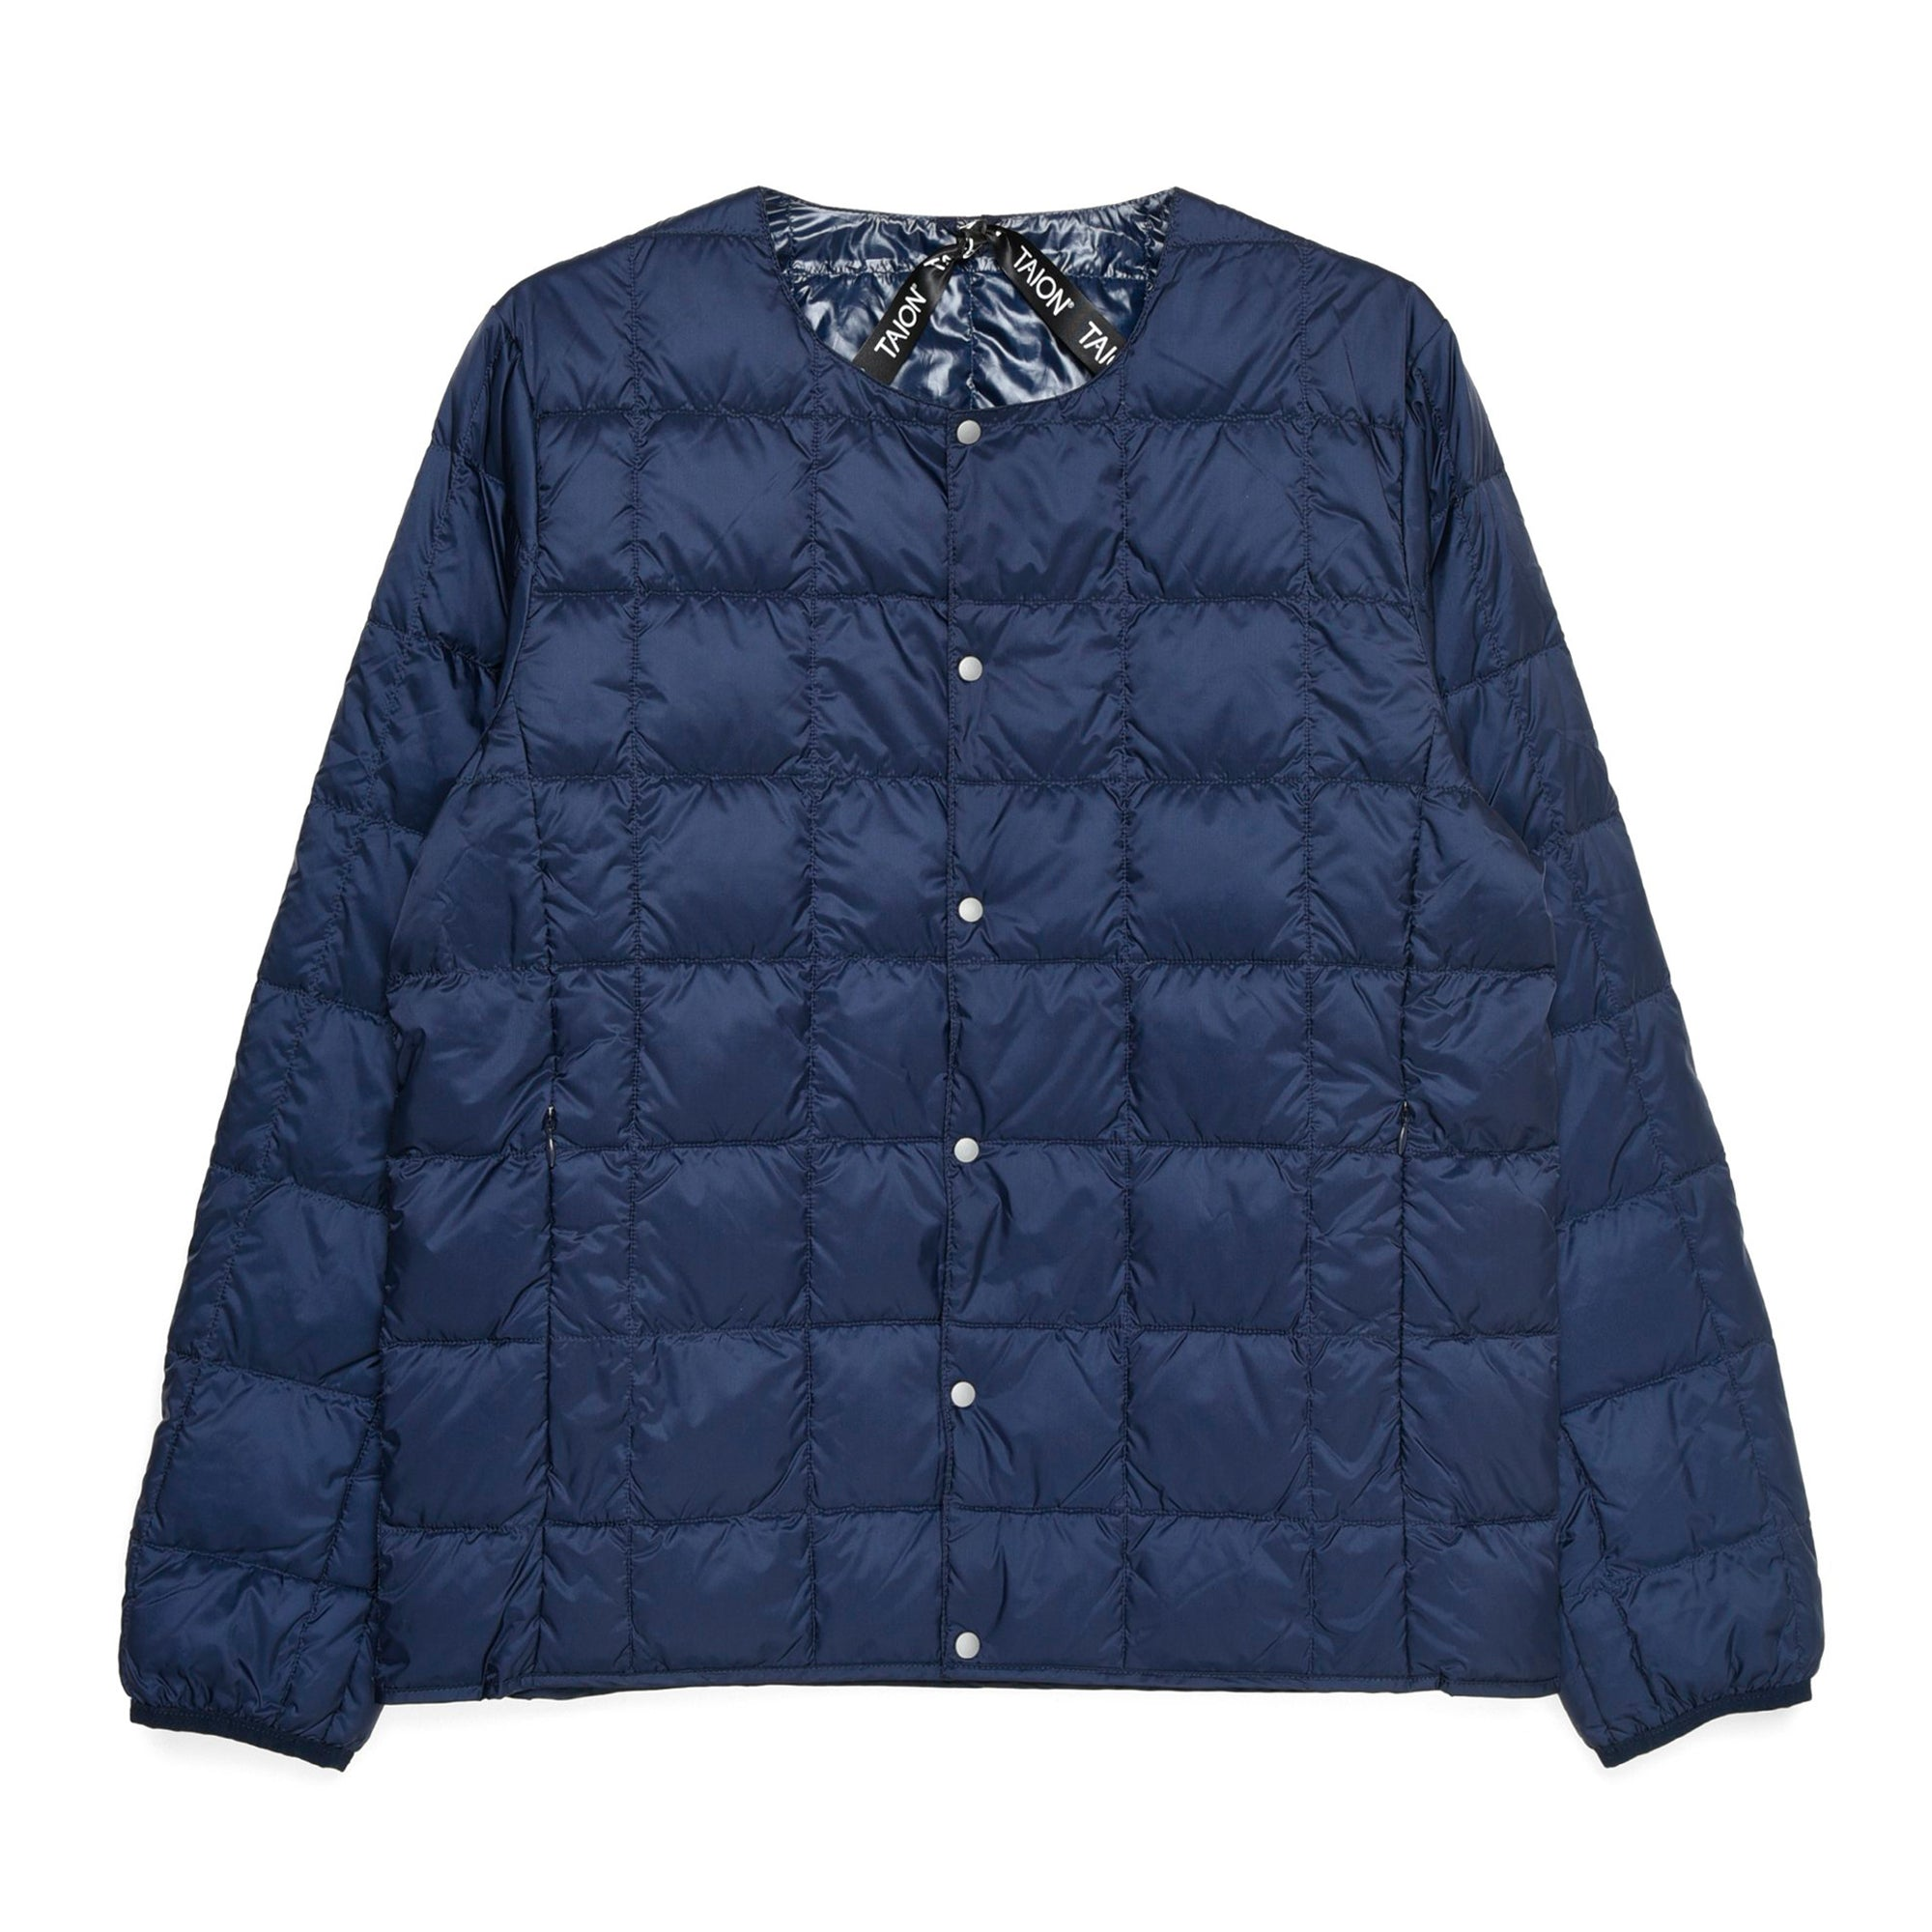 Taion Crew Neck Button Down Jacket: Navy - The Union Project